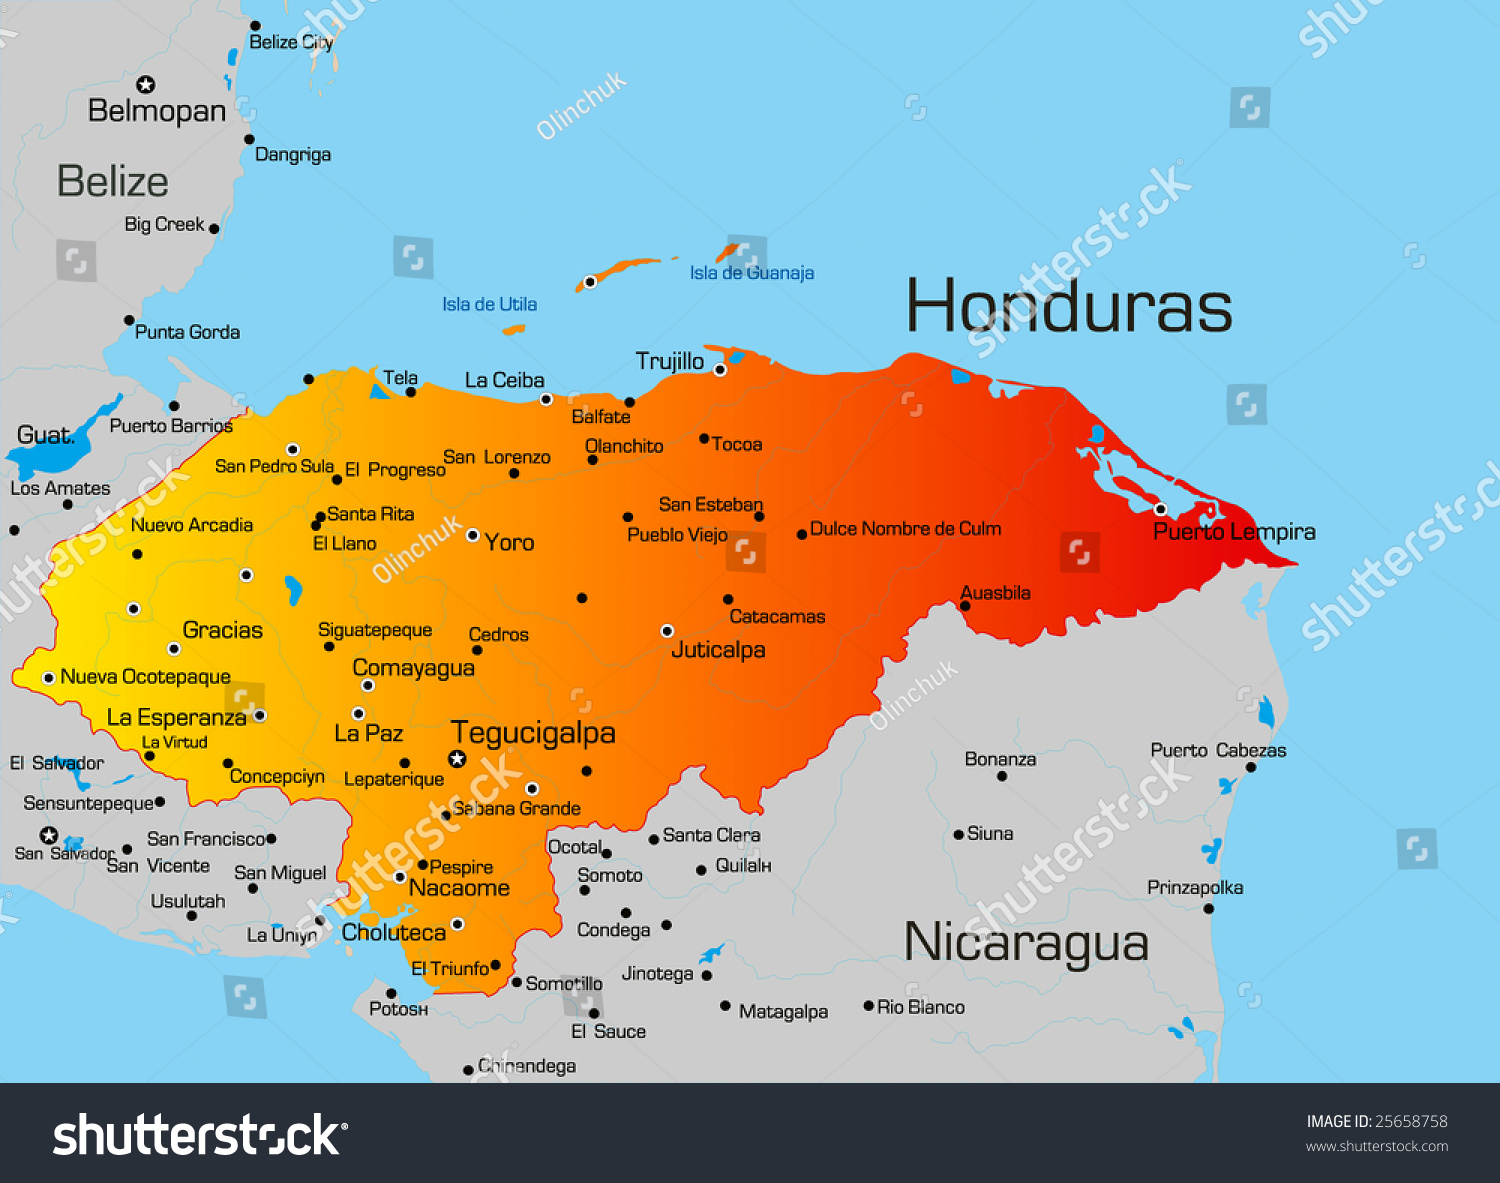 central america outline map free html with Stock Vector Vector Color Map Of Honduras Country on Stock Vector Map Of The Republic Of Colombia With The Regions Colored In Bright Colors And The Main Cities further Lit41832006syllabus additionally World Map Without Names also Stock Illustration North America Blind Map additionally Map Of Japan Cities English.